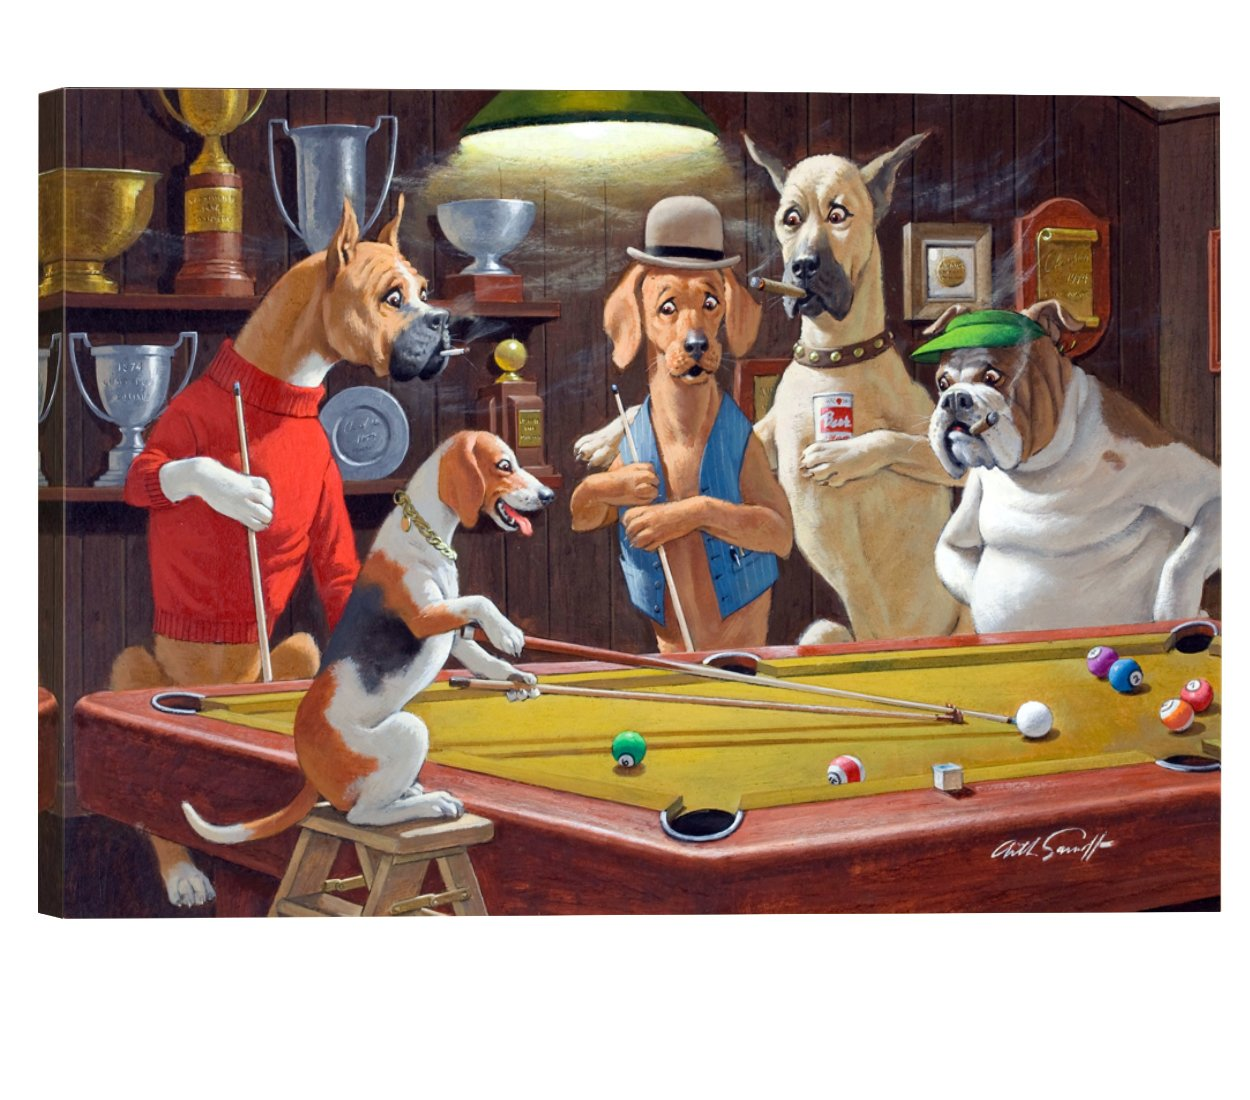 Elite Art Eliteart-Dogs Playing Pool (c) By Arthur Sarnoff Oil Painting Reproduction Giclee Wall Art Canvas Prints by Elite Art